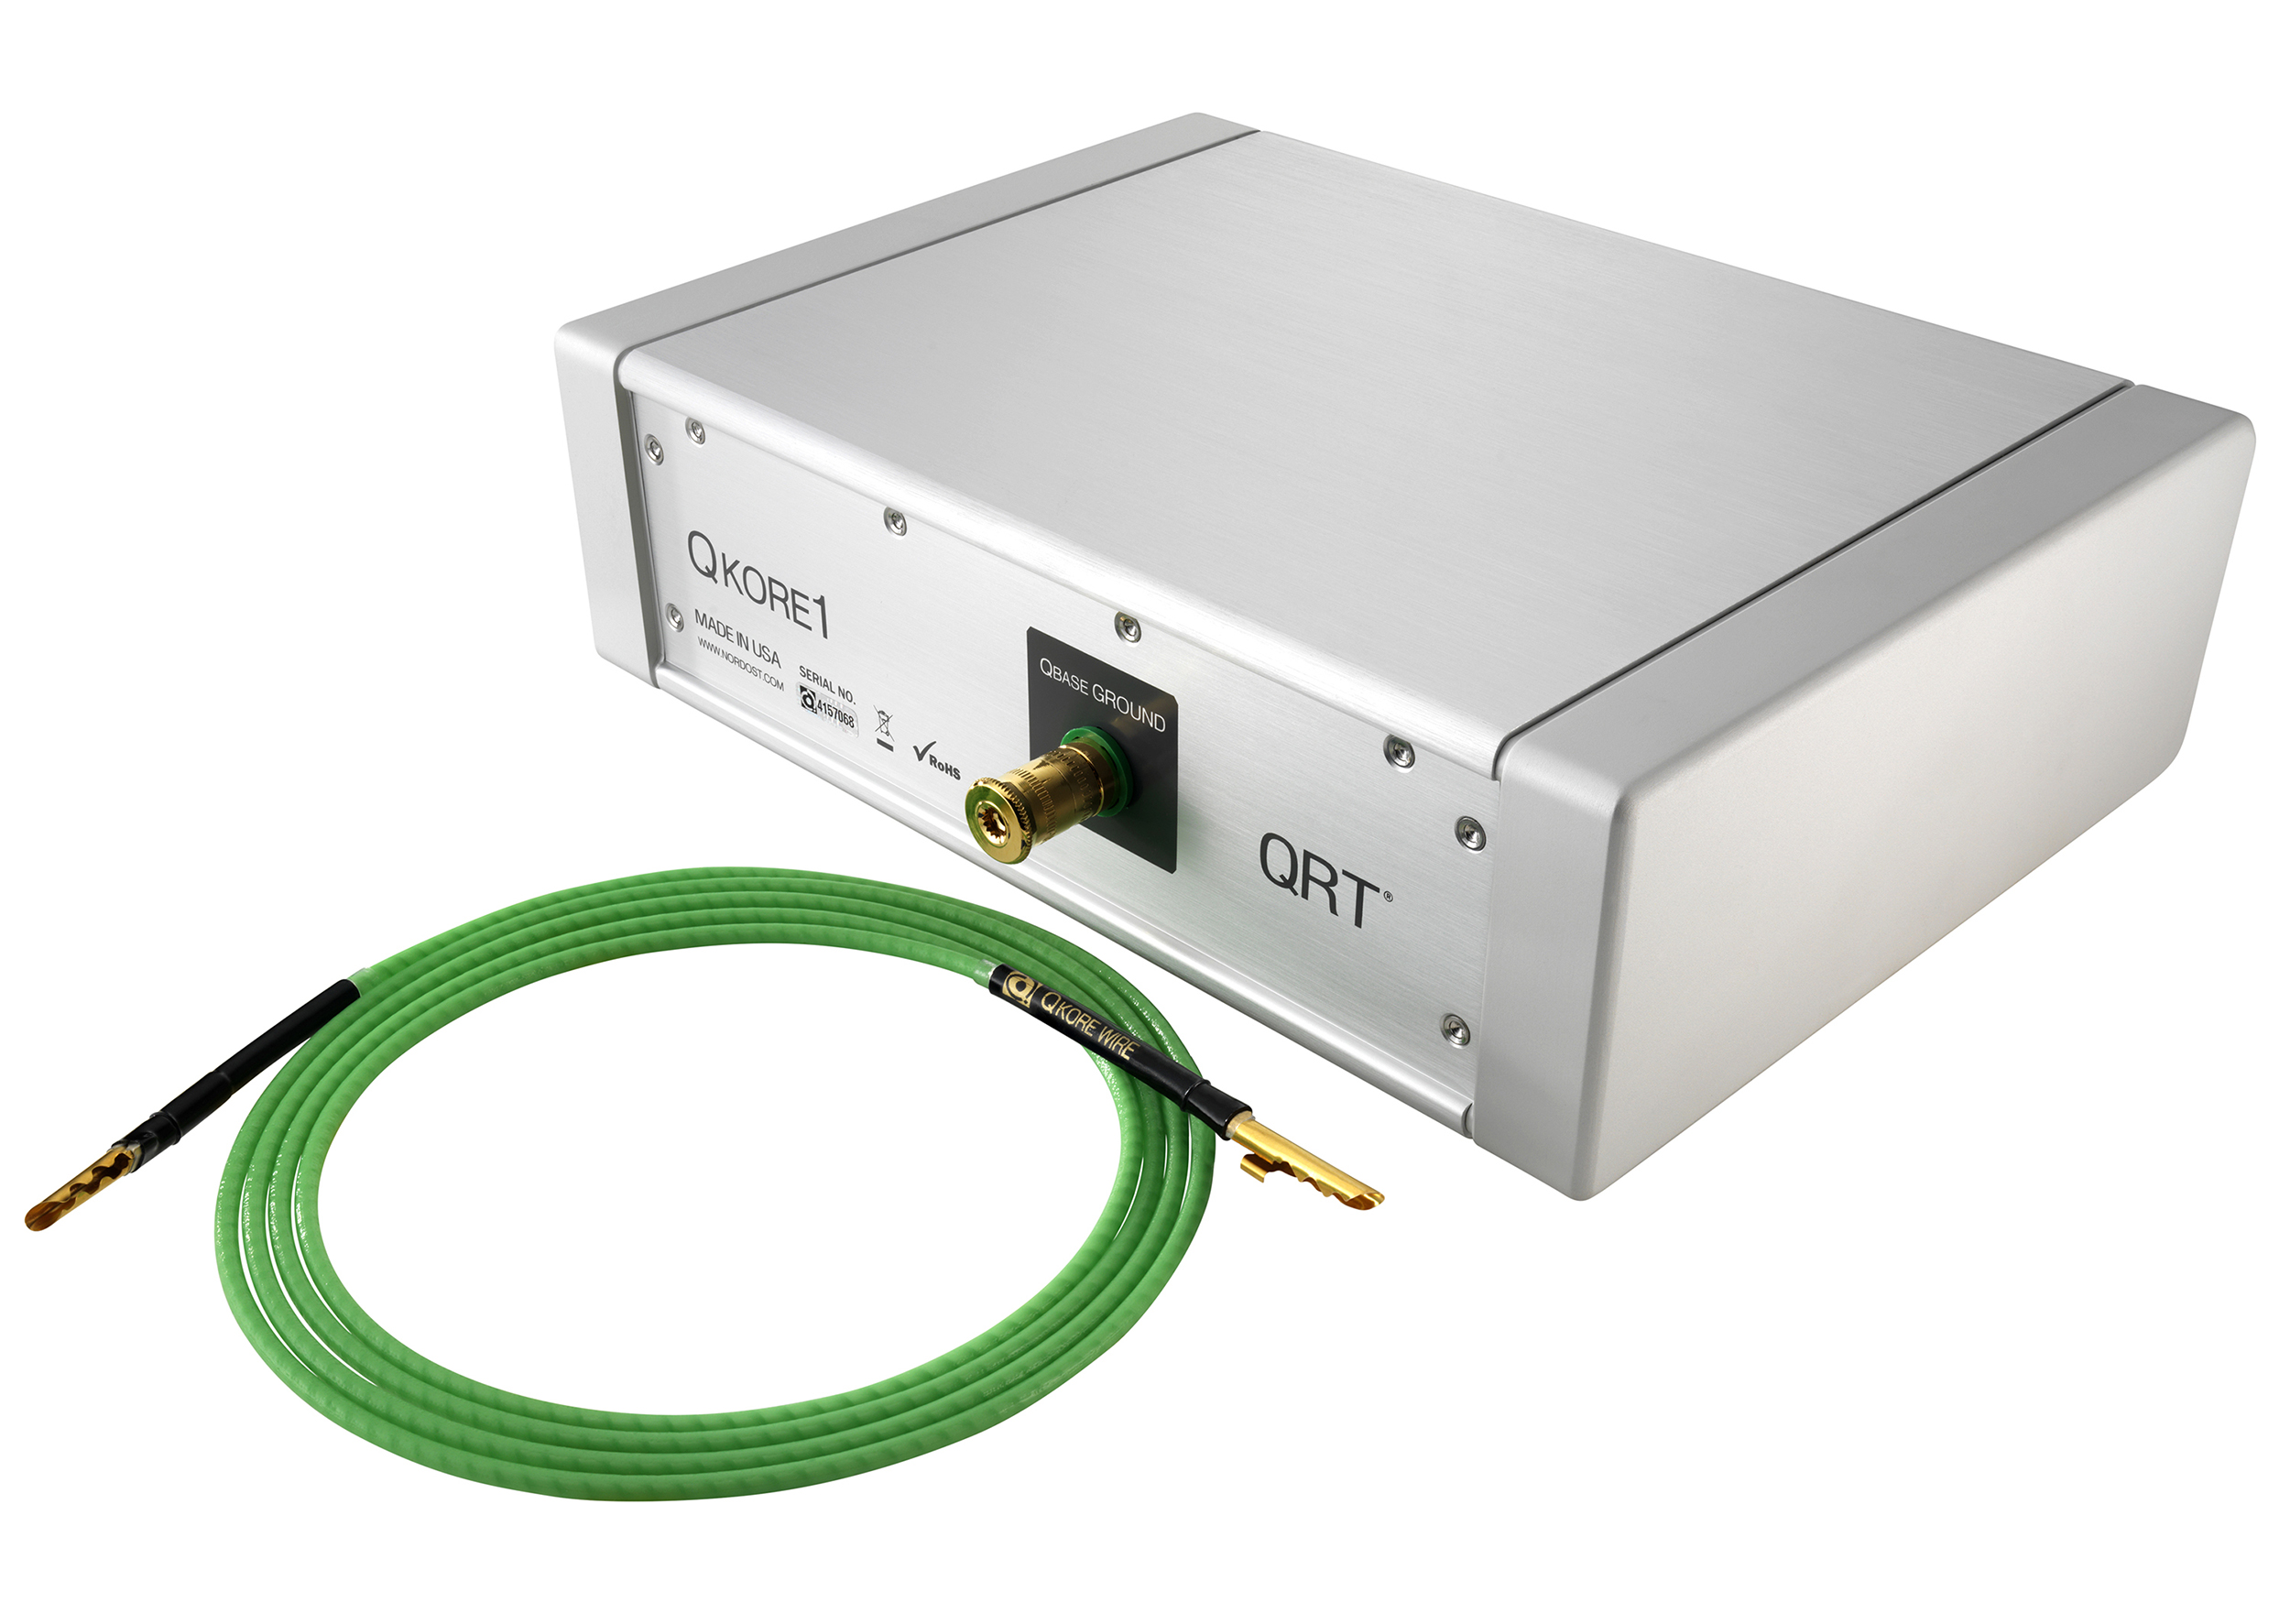 lg-QRT-QKore1_with wire